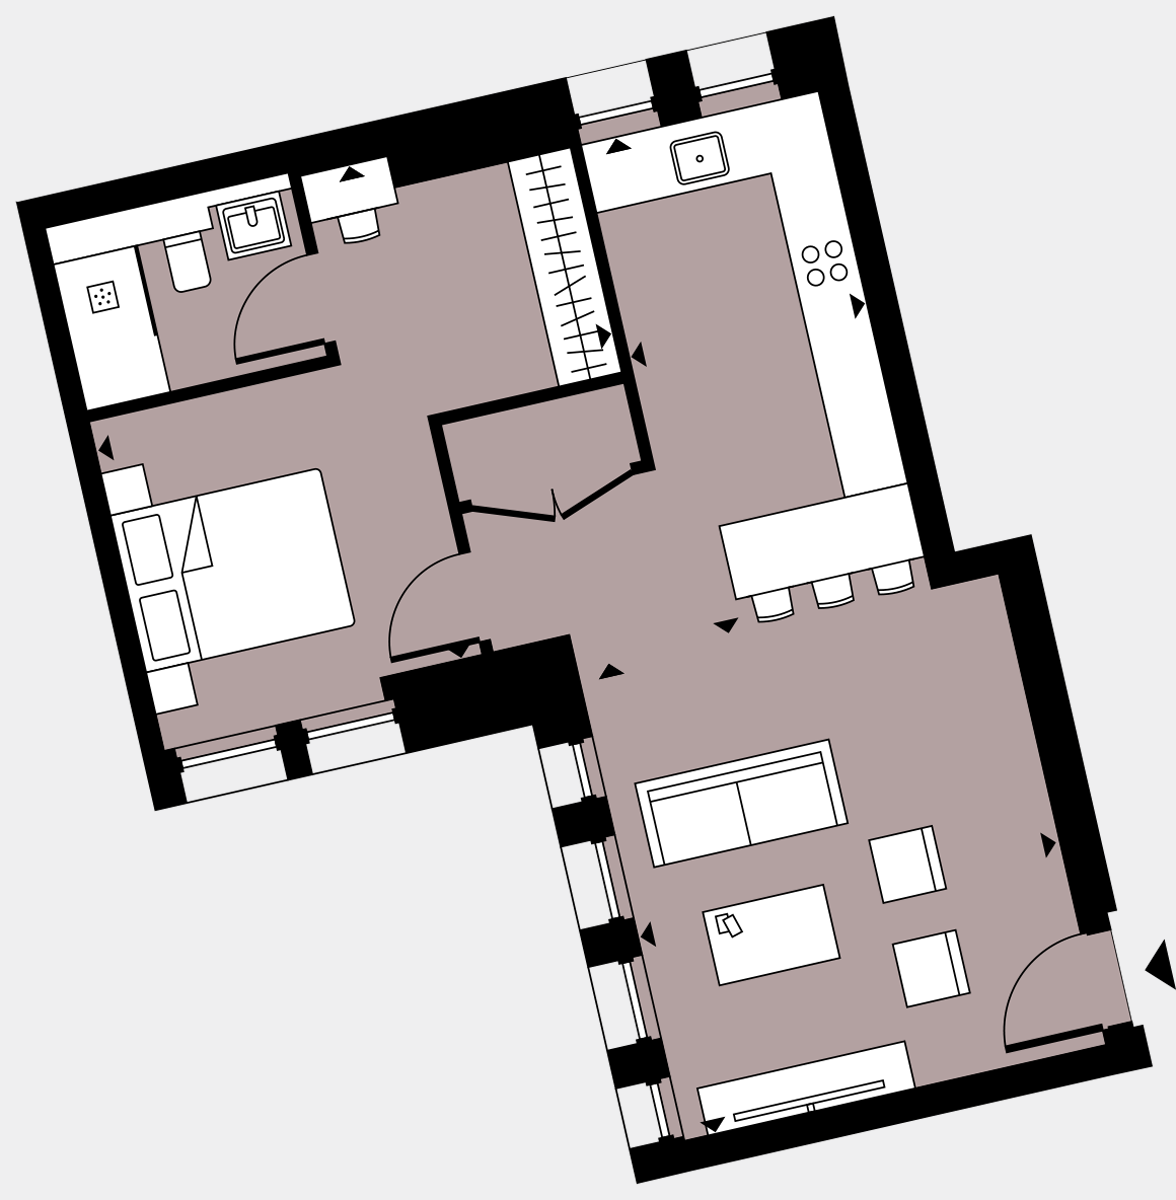 Brigade Court London SE1 Apartment floorplan - L2 13 Davies House